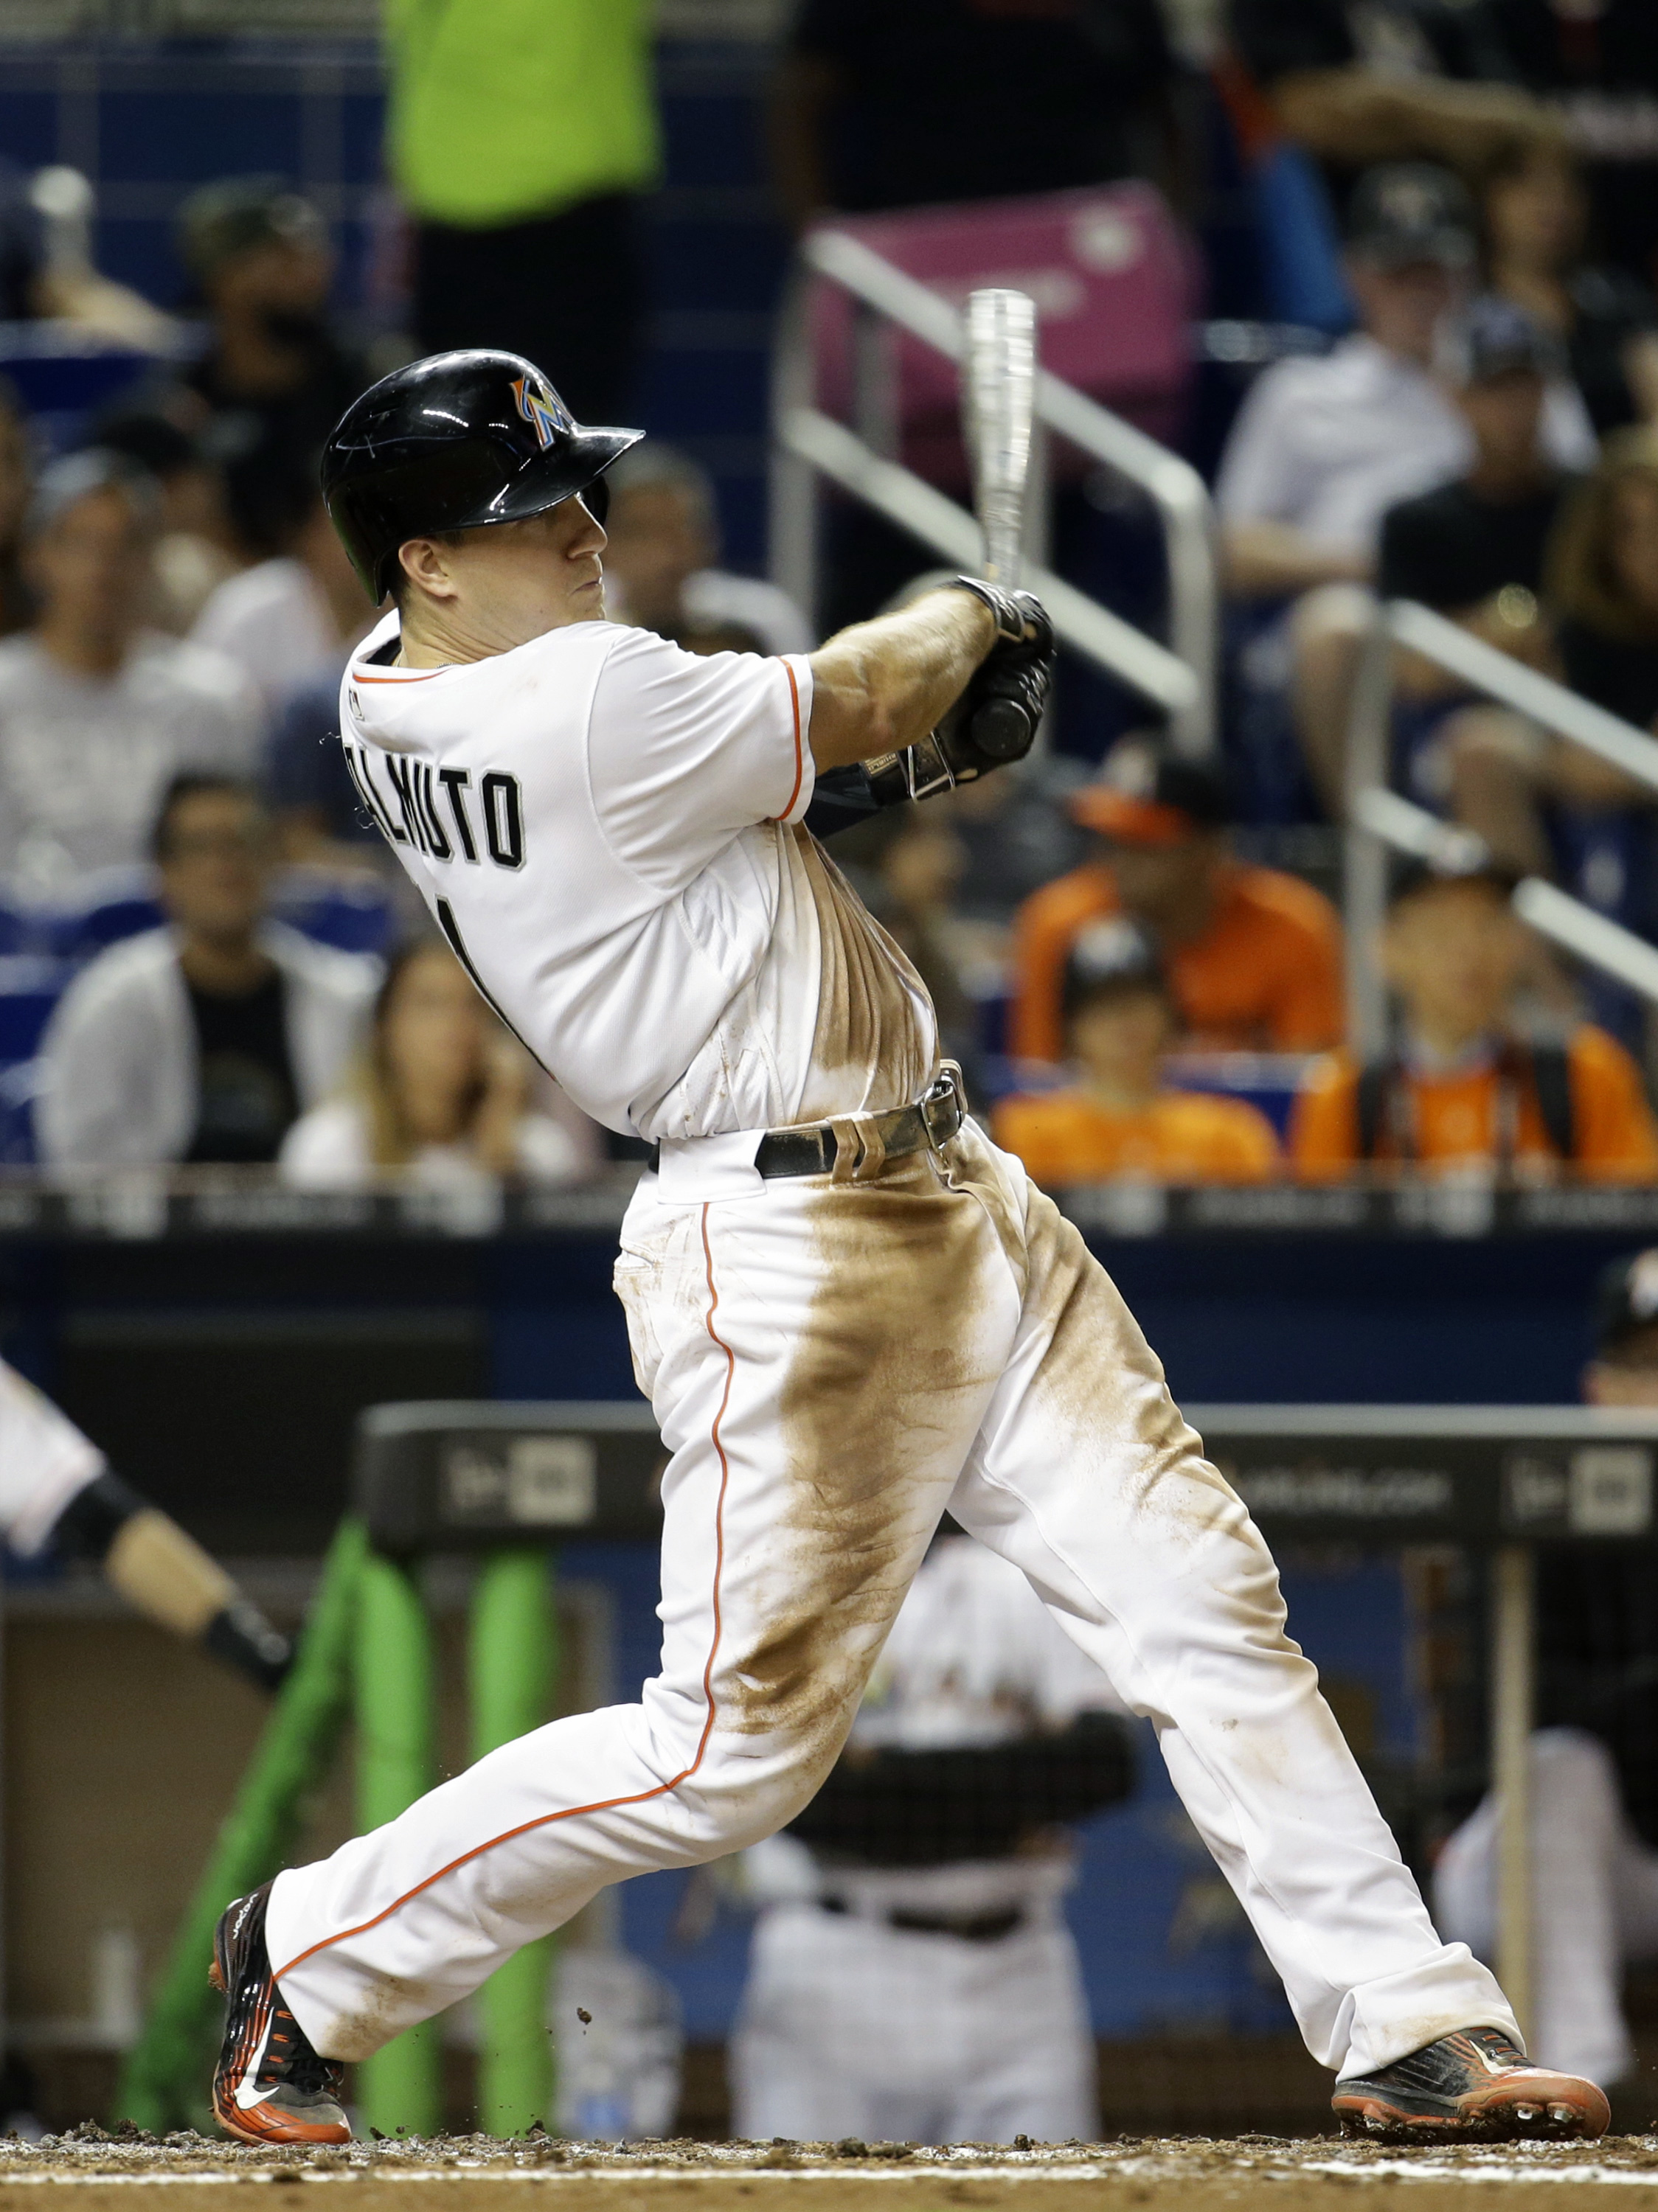 Miami Marlins' J.T. Realmuto follows through on a double during the third inning of a baseball game against the Arizona Diamondbacks, Wednesday, May 4, 2016, in Miami. (AP Photo/Lynne Sladky)